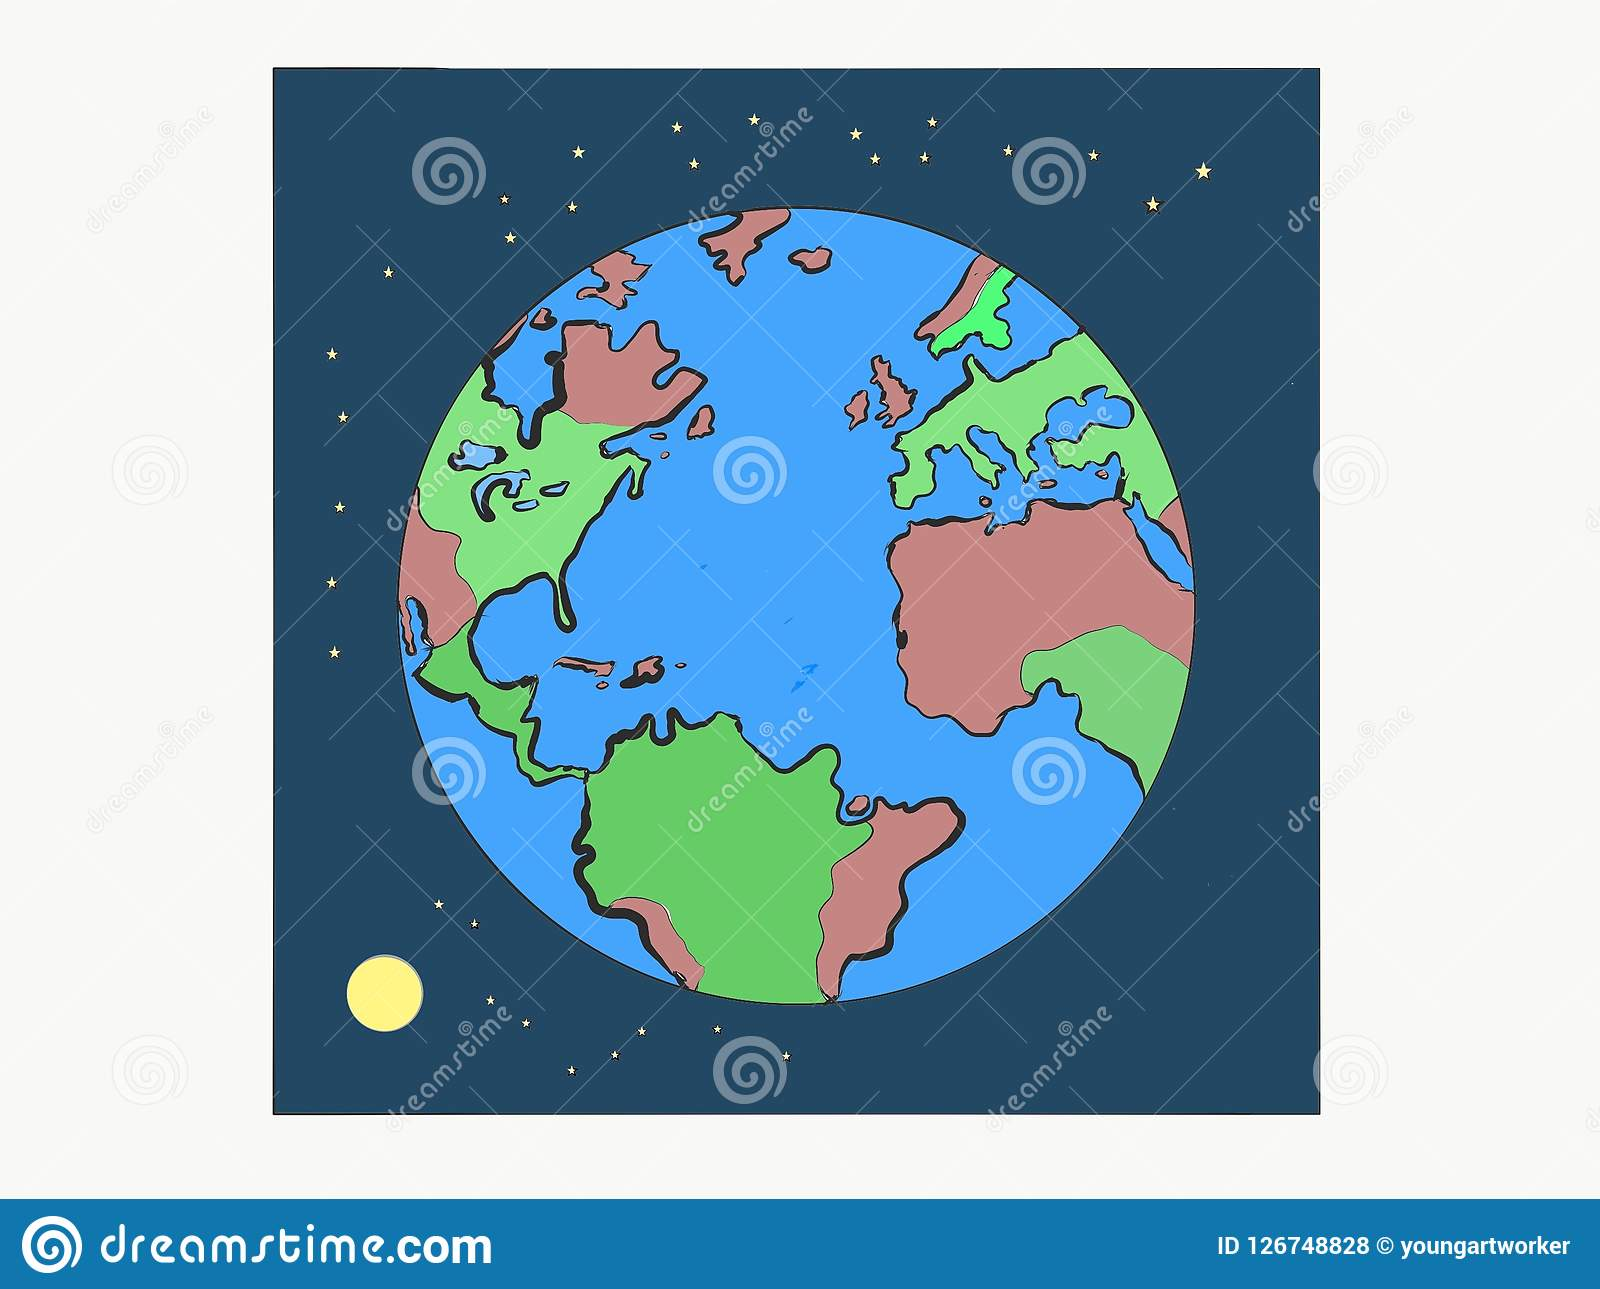 Still Life Image Of Round Planet Earth With Round Bright Moon And Shining Stars Art Photo Illustration Nature Abstract Object Stock Illustration Illustration Of Round Continents 126748828 The genre of parody documentaries is vastly underserved. https www dreamstime com you see round planet earth few brown green continents surrounding light blue oceans moon stars also present image126748828